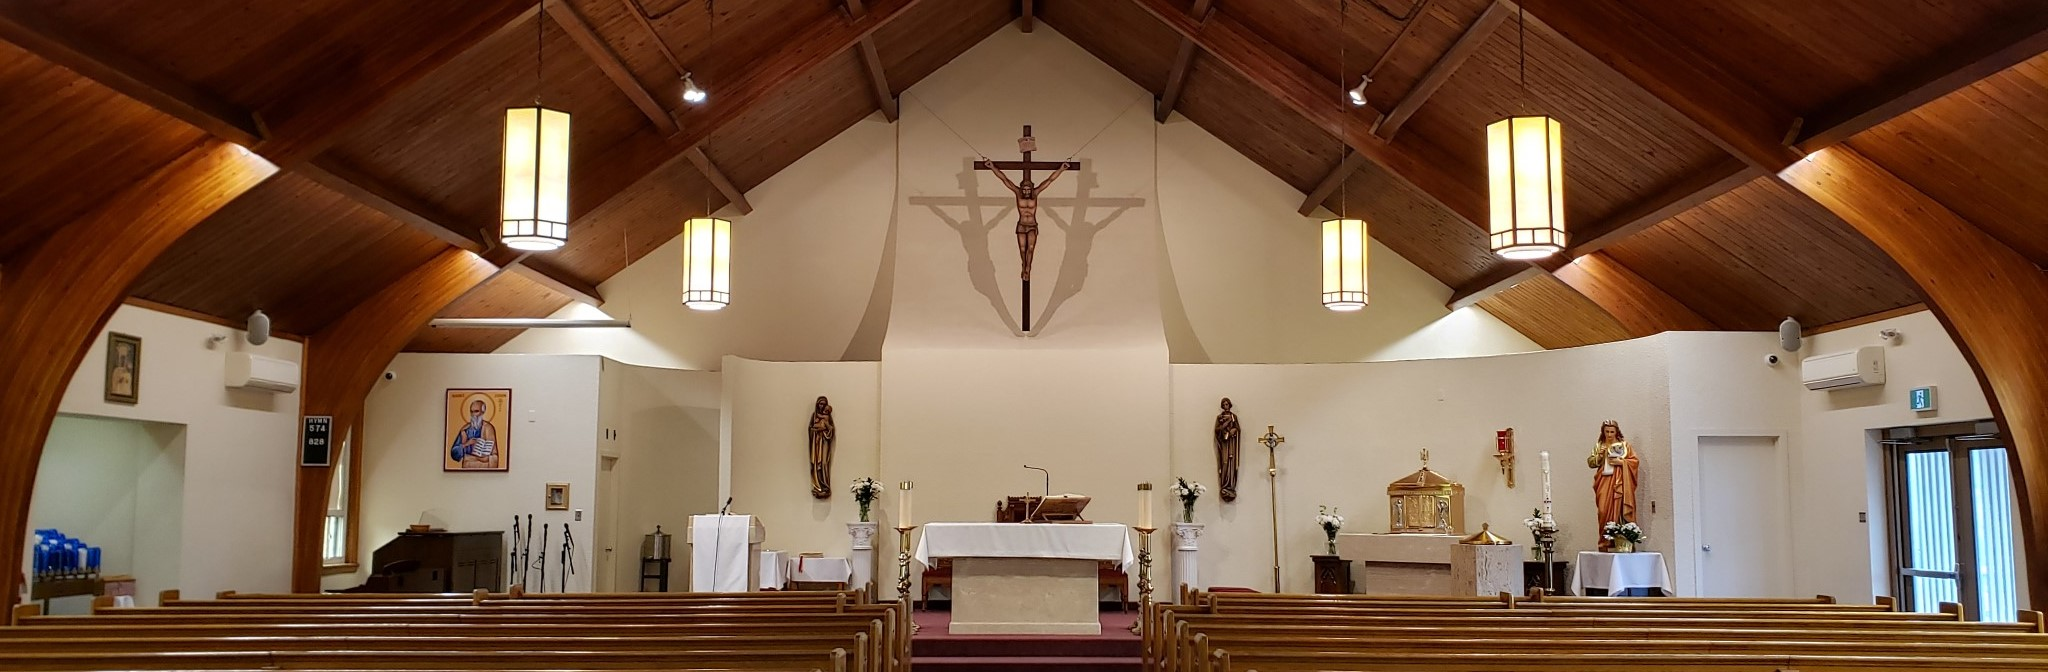 An inside view of the Sanctuary of St. John the Evangelist Parish, Weston.  Wide panoramic view from the candleside to the side doors of sanctuary.